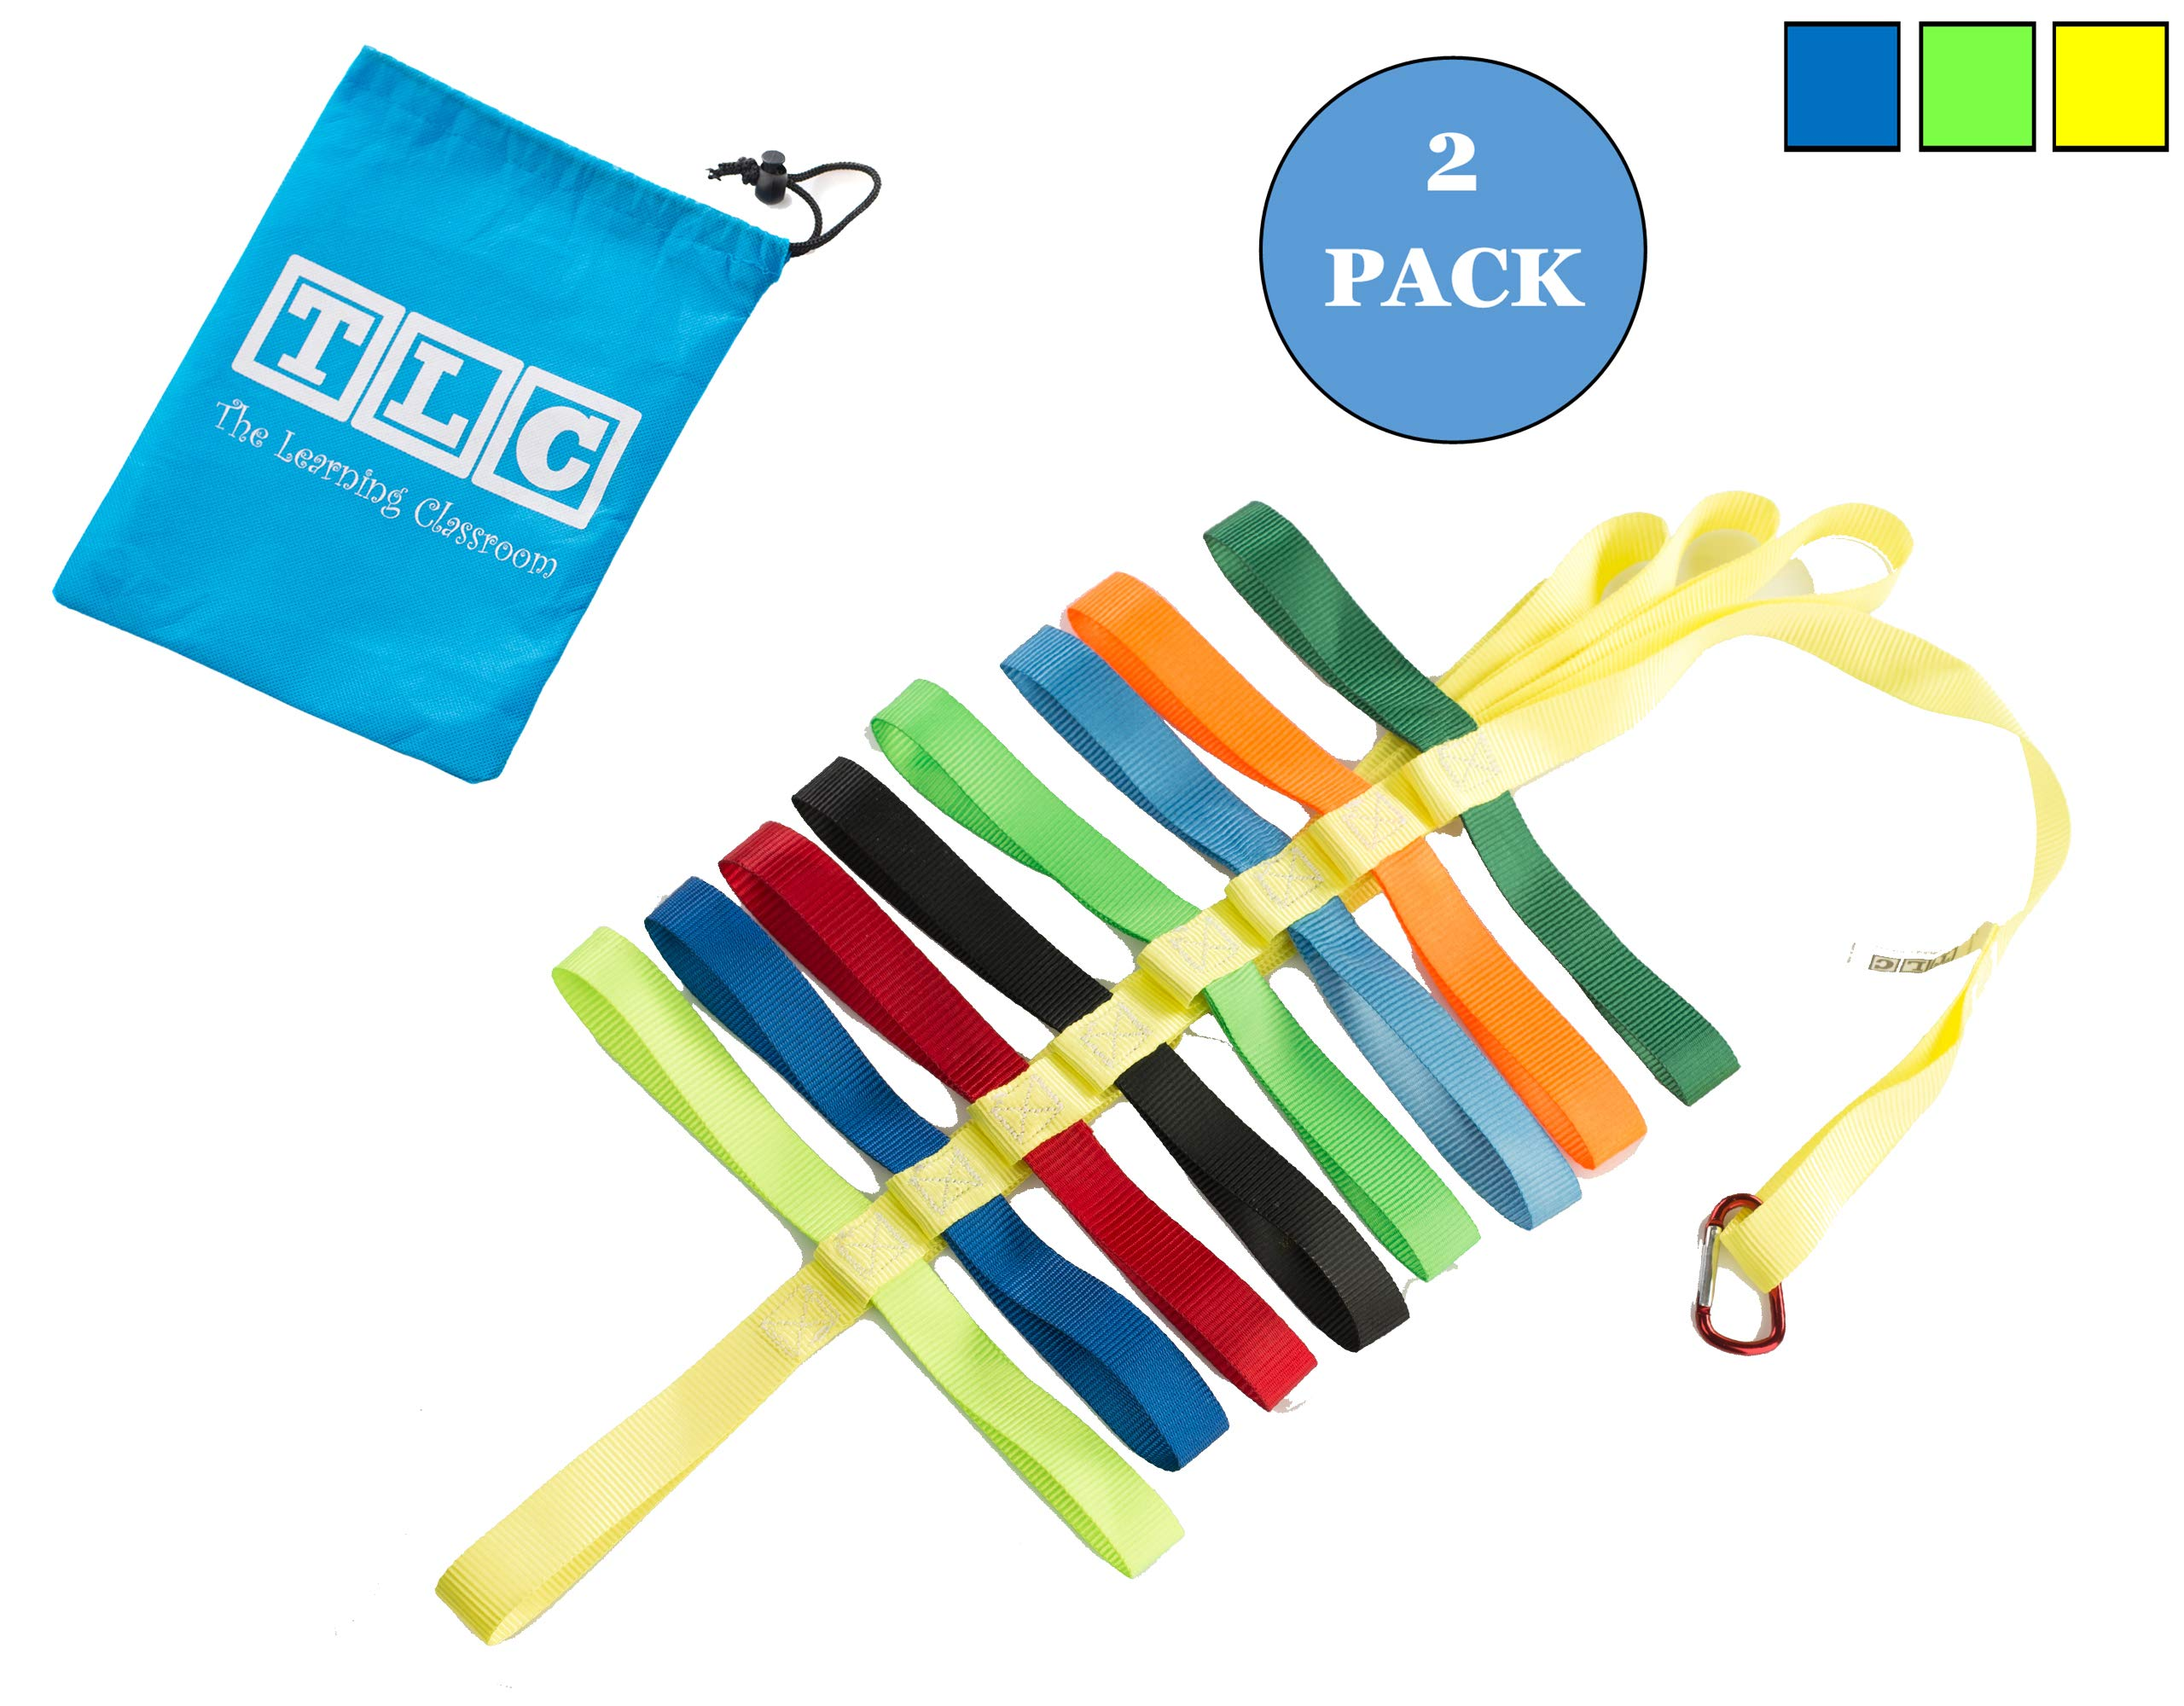 The Learning Classroom Preschool Walking Rope, Carry Bag, 16-Colorful Handles, Blue/Green/Yellow, 1-Pack or 2-Pack, Daycare, Toddler by The Learning Classroom (Image #1)